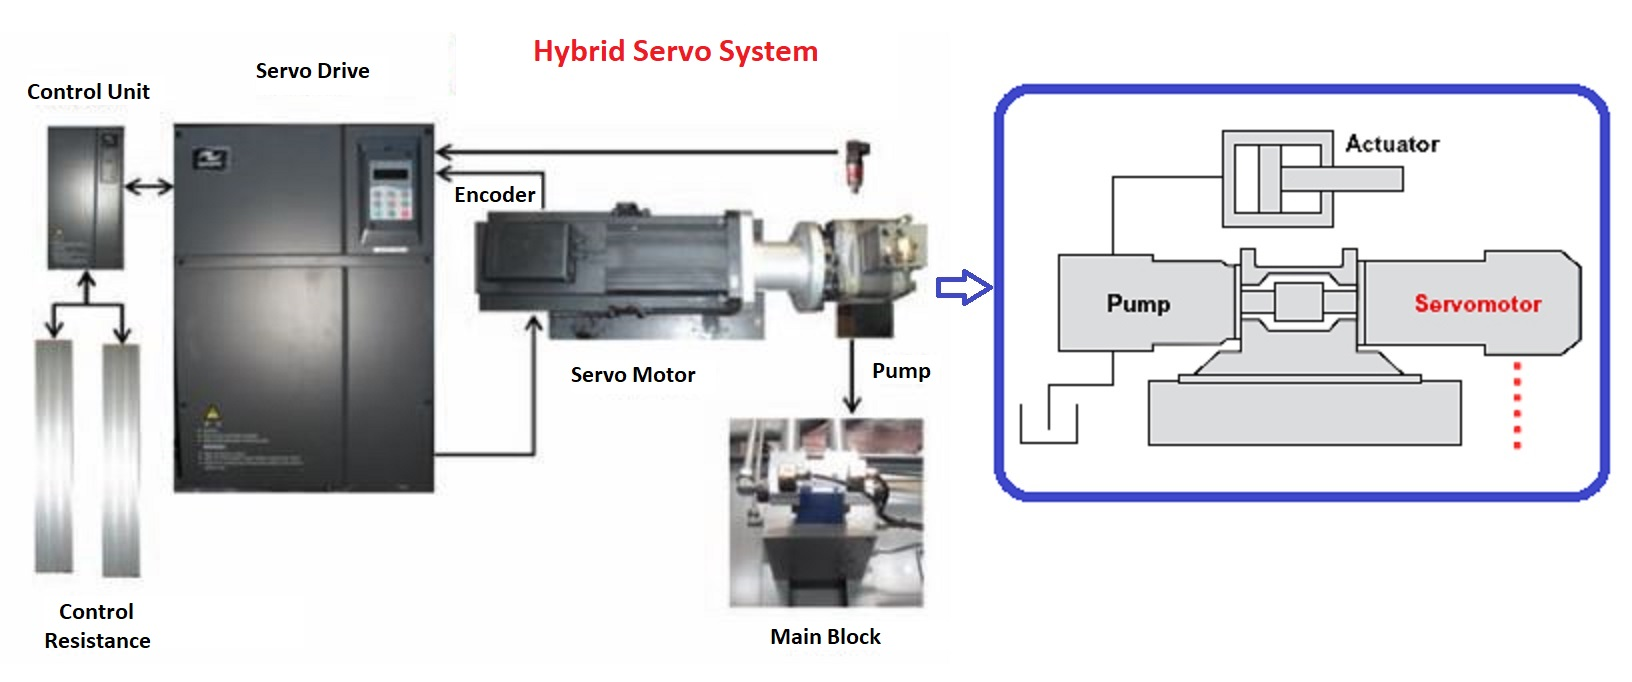 5 Reasons To Get a Hybrid Injection Molding Machine | Injection